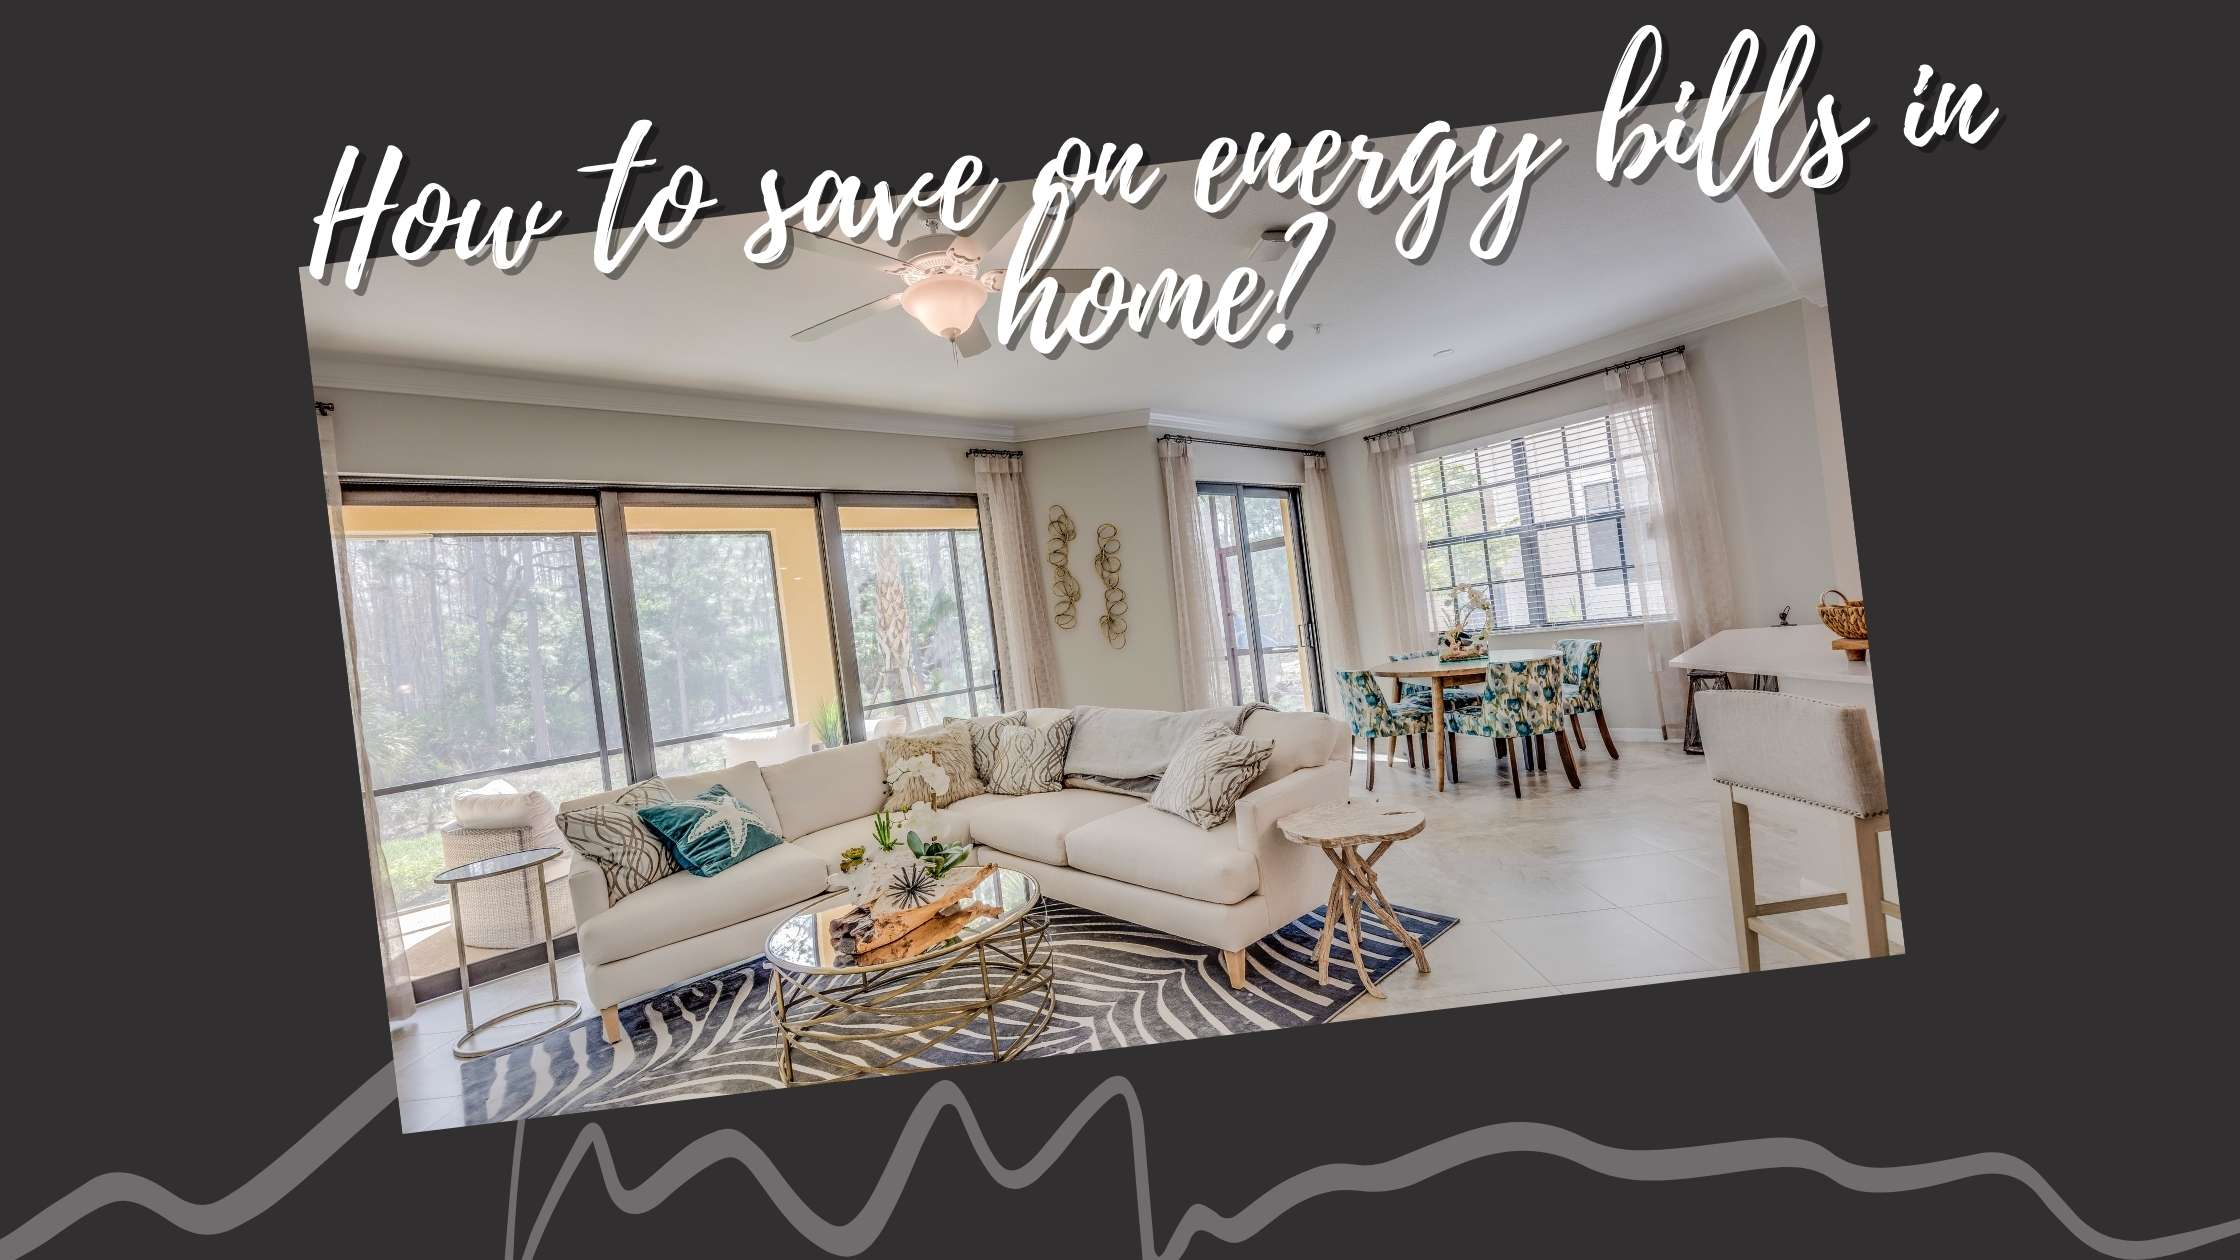 How to save on energy bills in home 6 Smart Home Tips